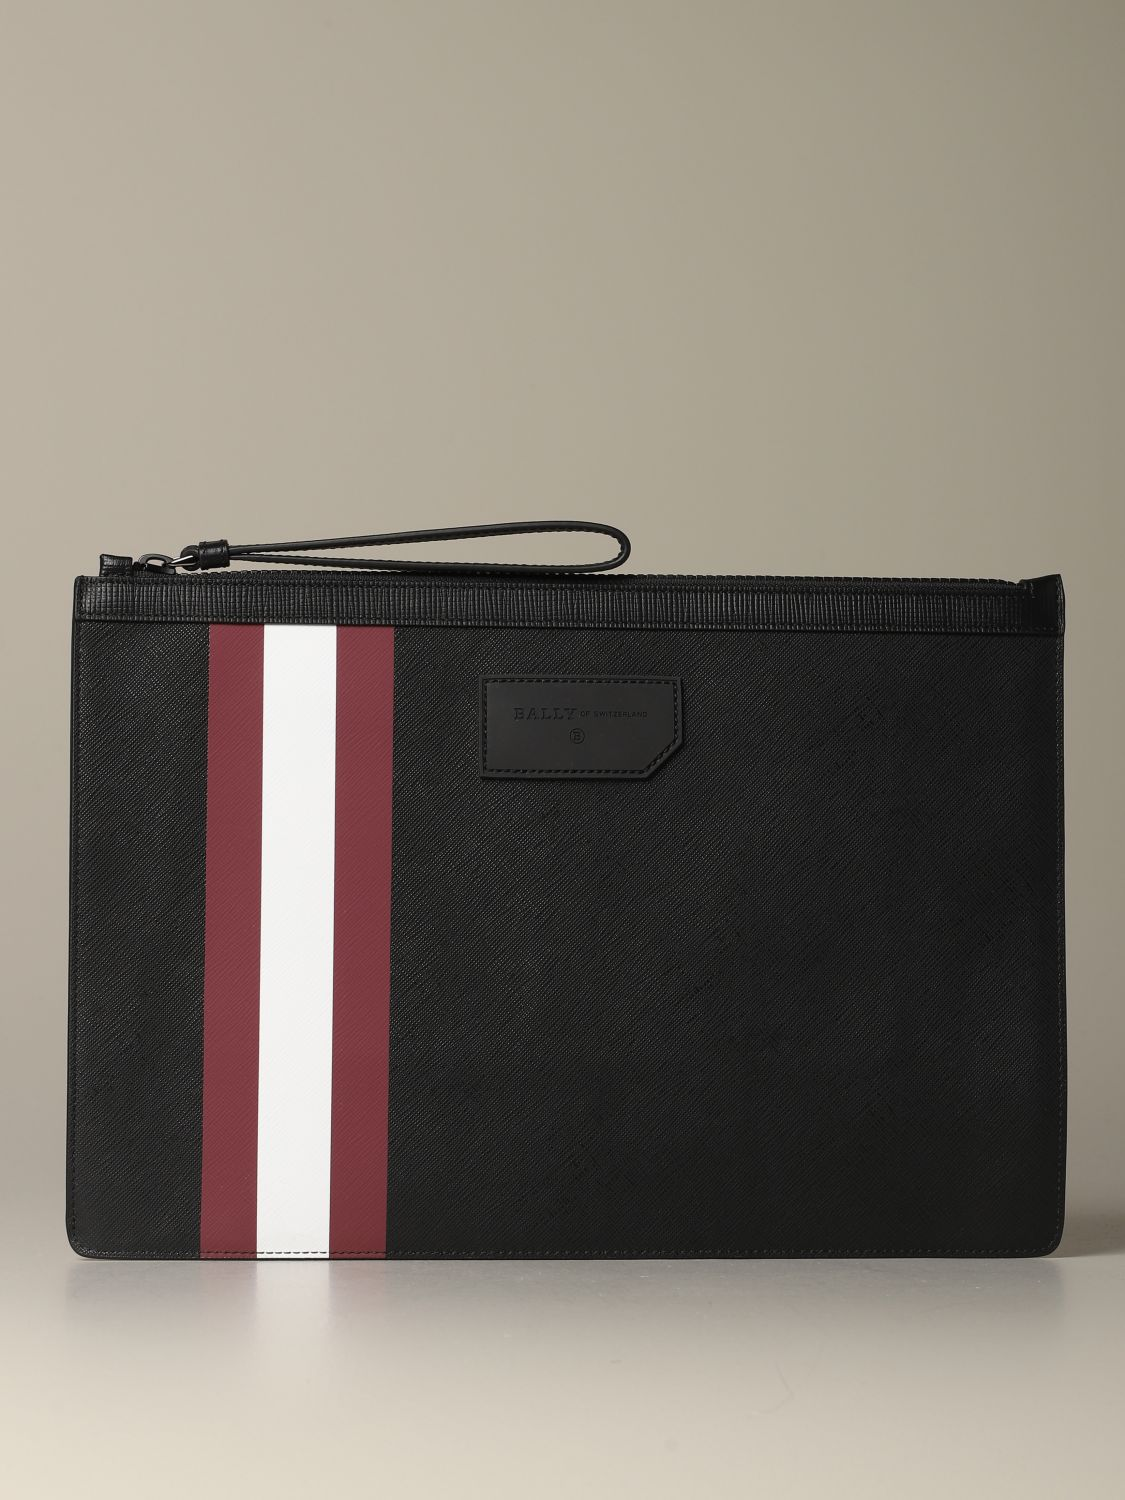 Briefcase Bally: Bollis Bally pouch in coated canvas with trainspotting red 1